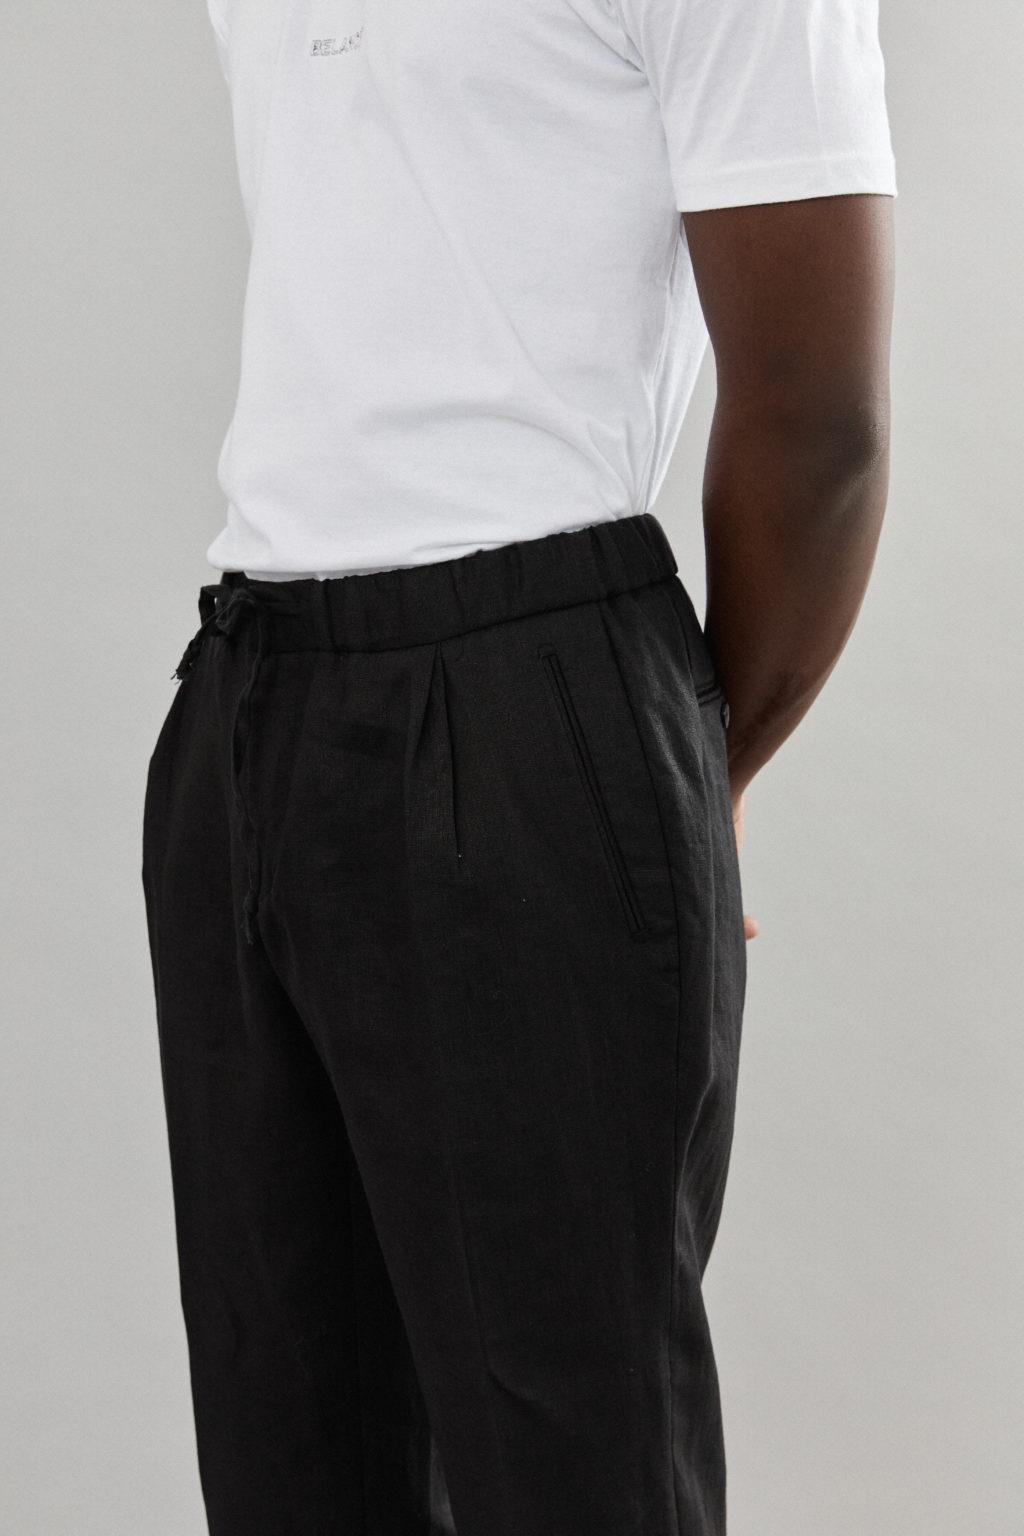 TAILORED BLACK LINEN TROUSERS